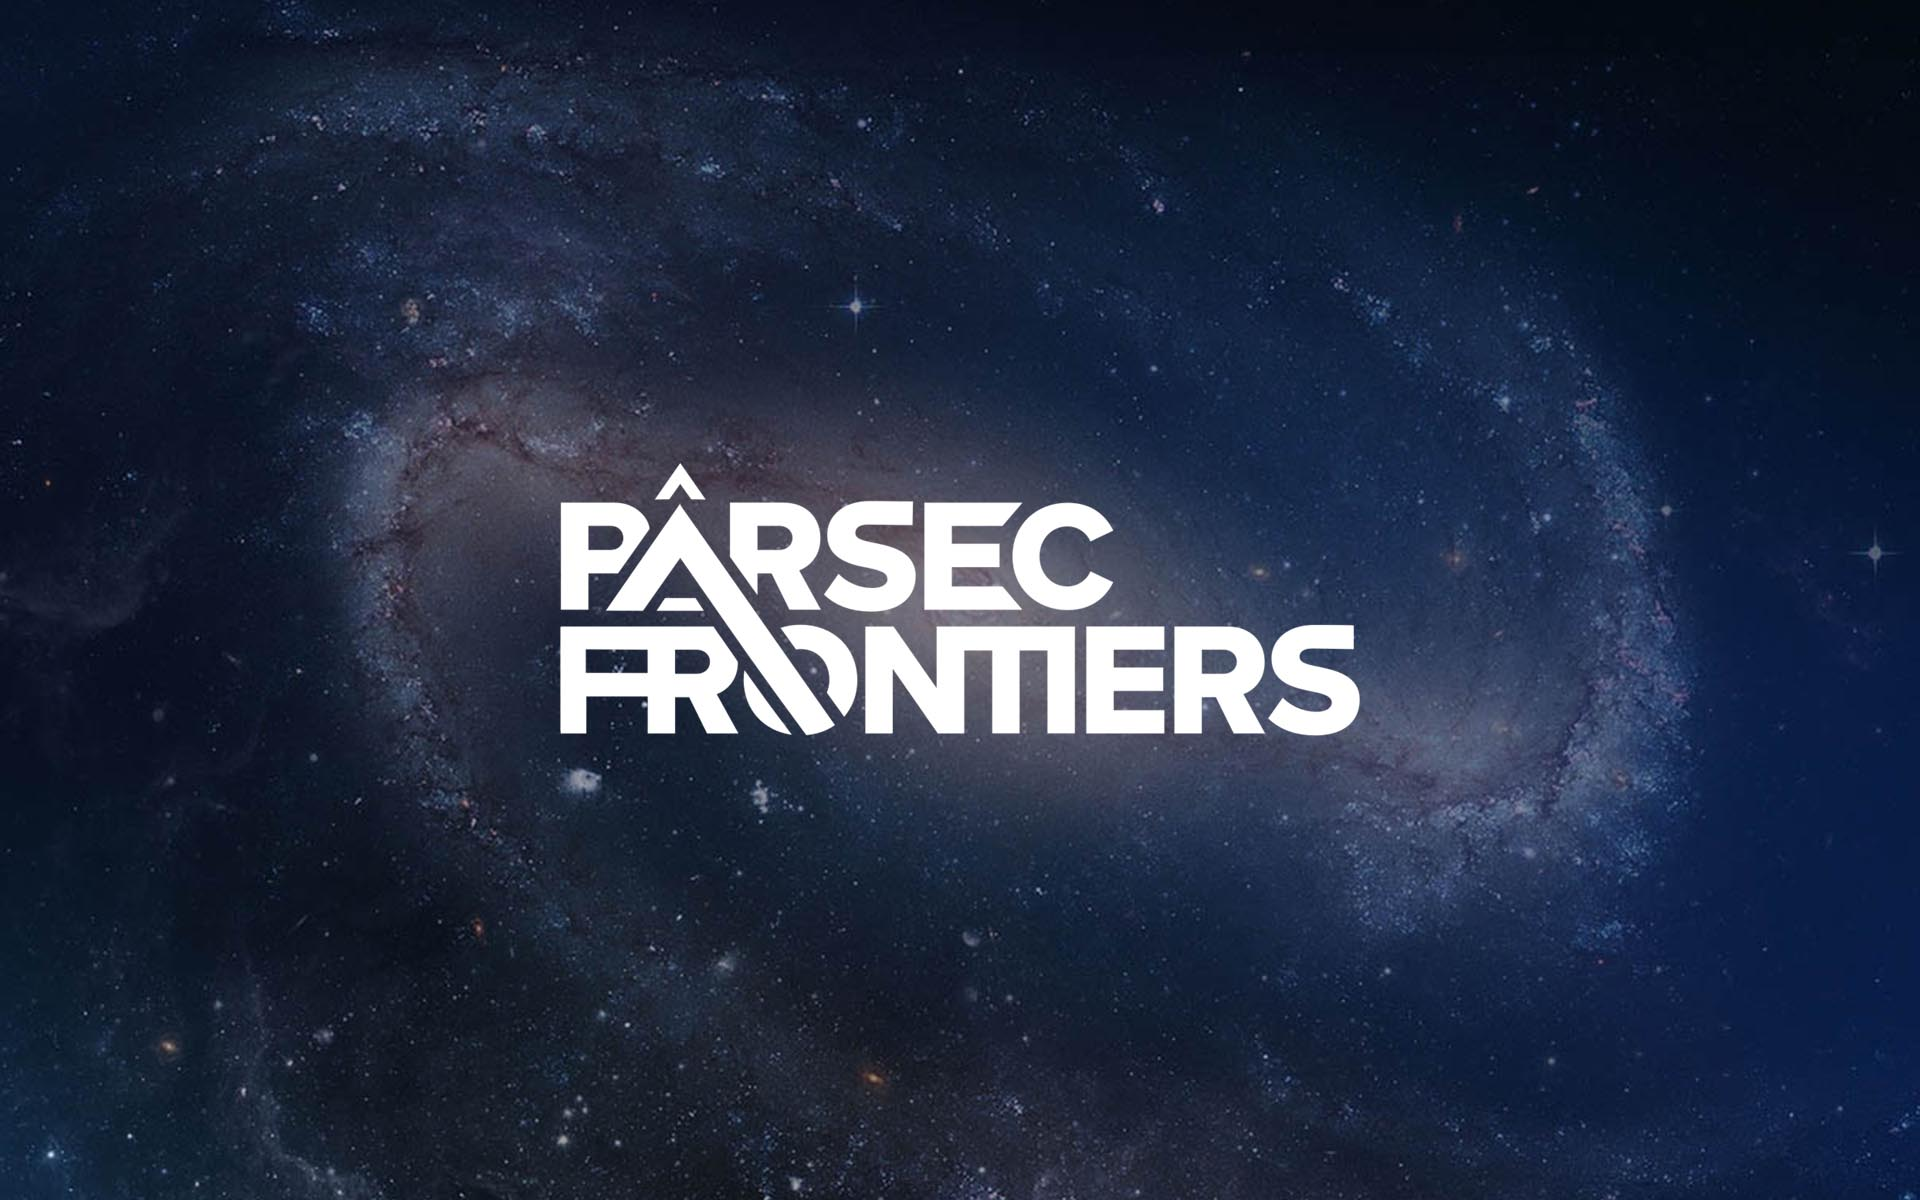 Parsec Frontiers Opens Doors To New Galaxies With Its ICO